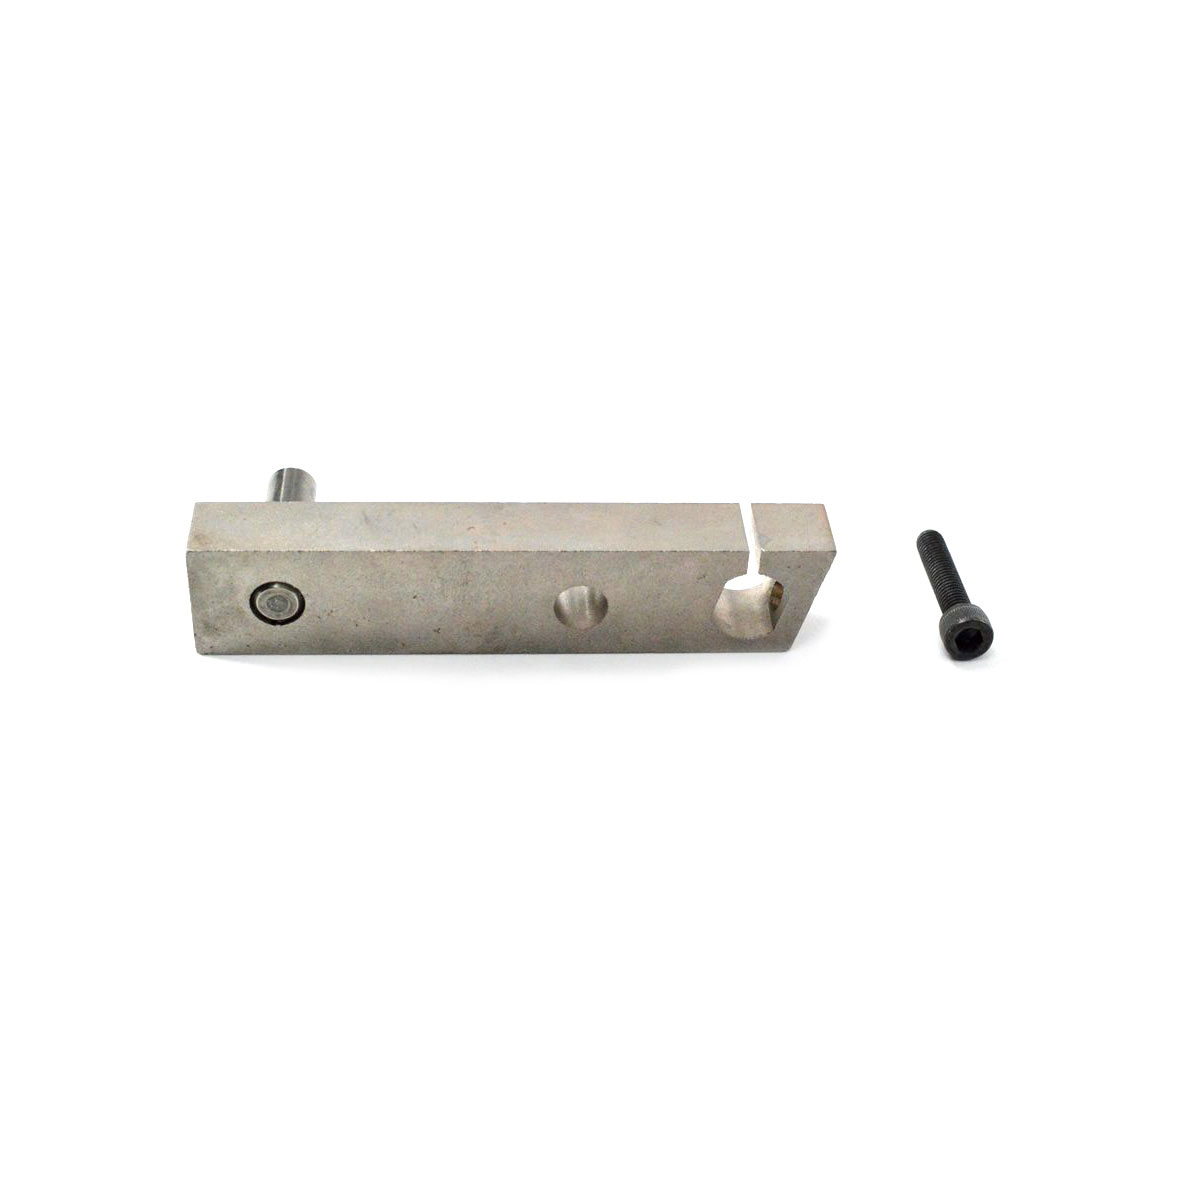 Scag Pump Control Lever Assembly with Screw (LH) 46323